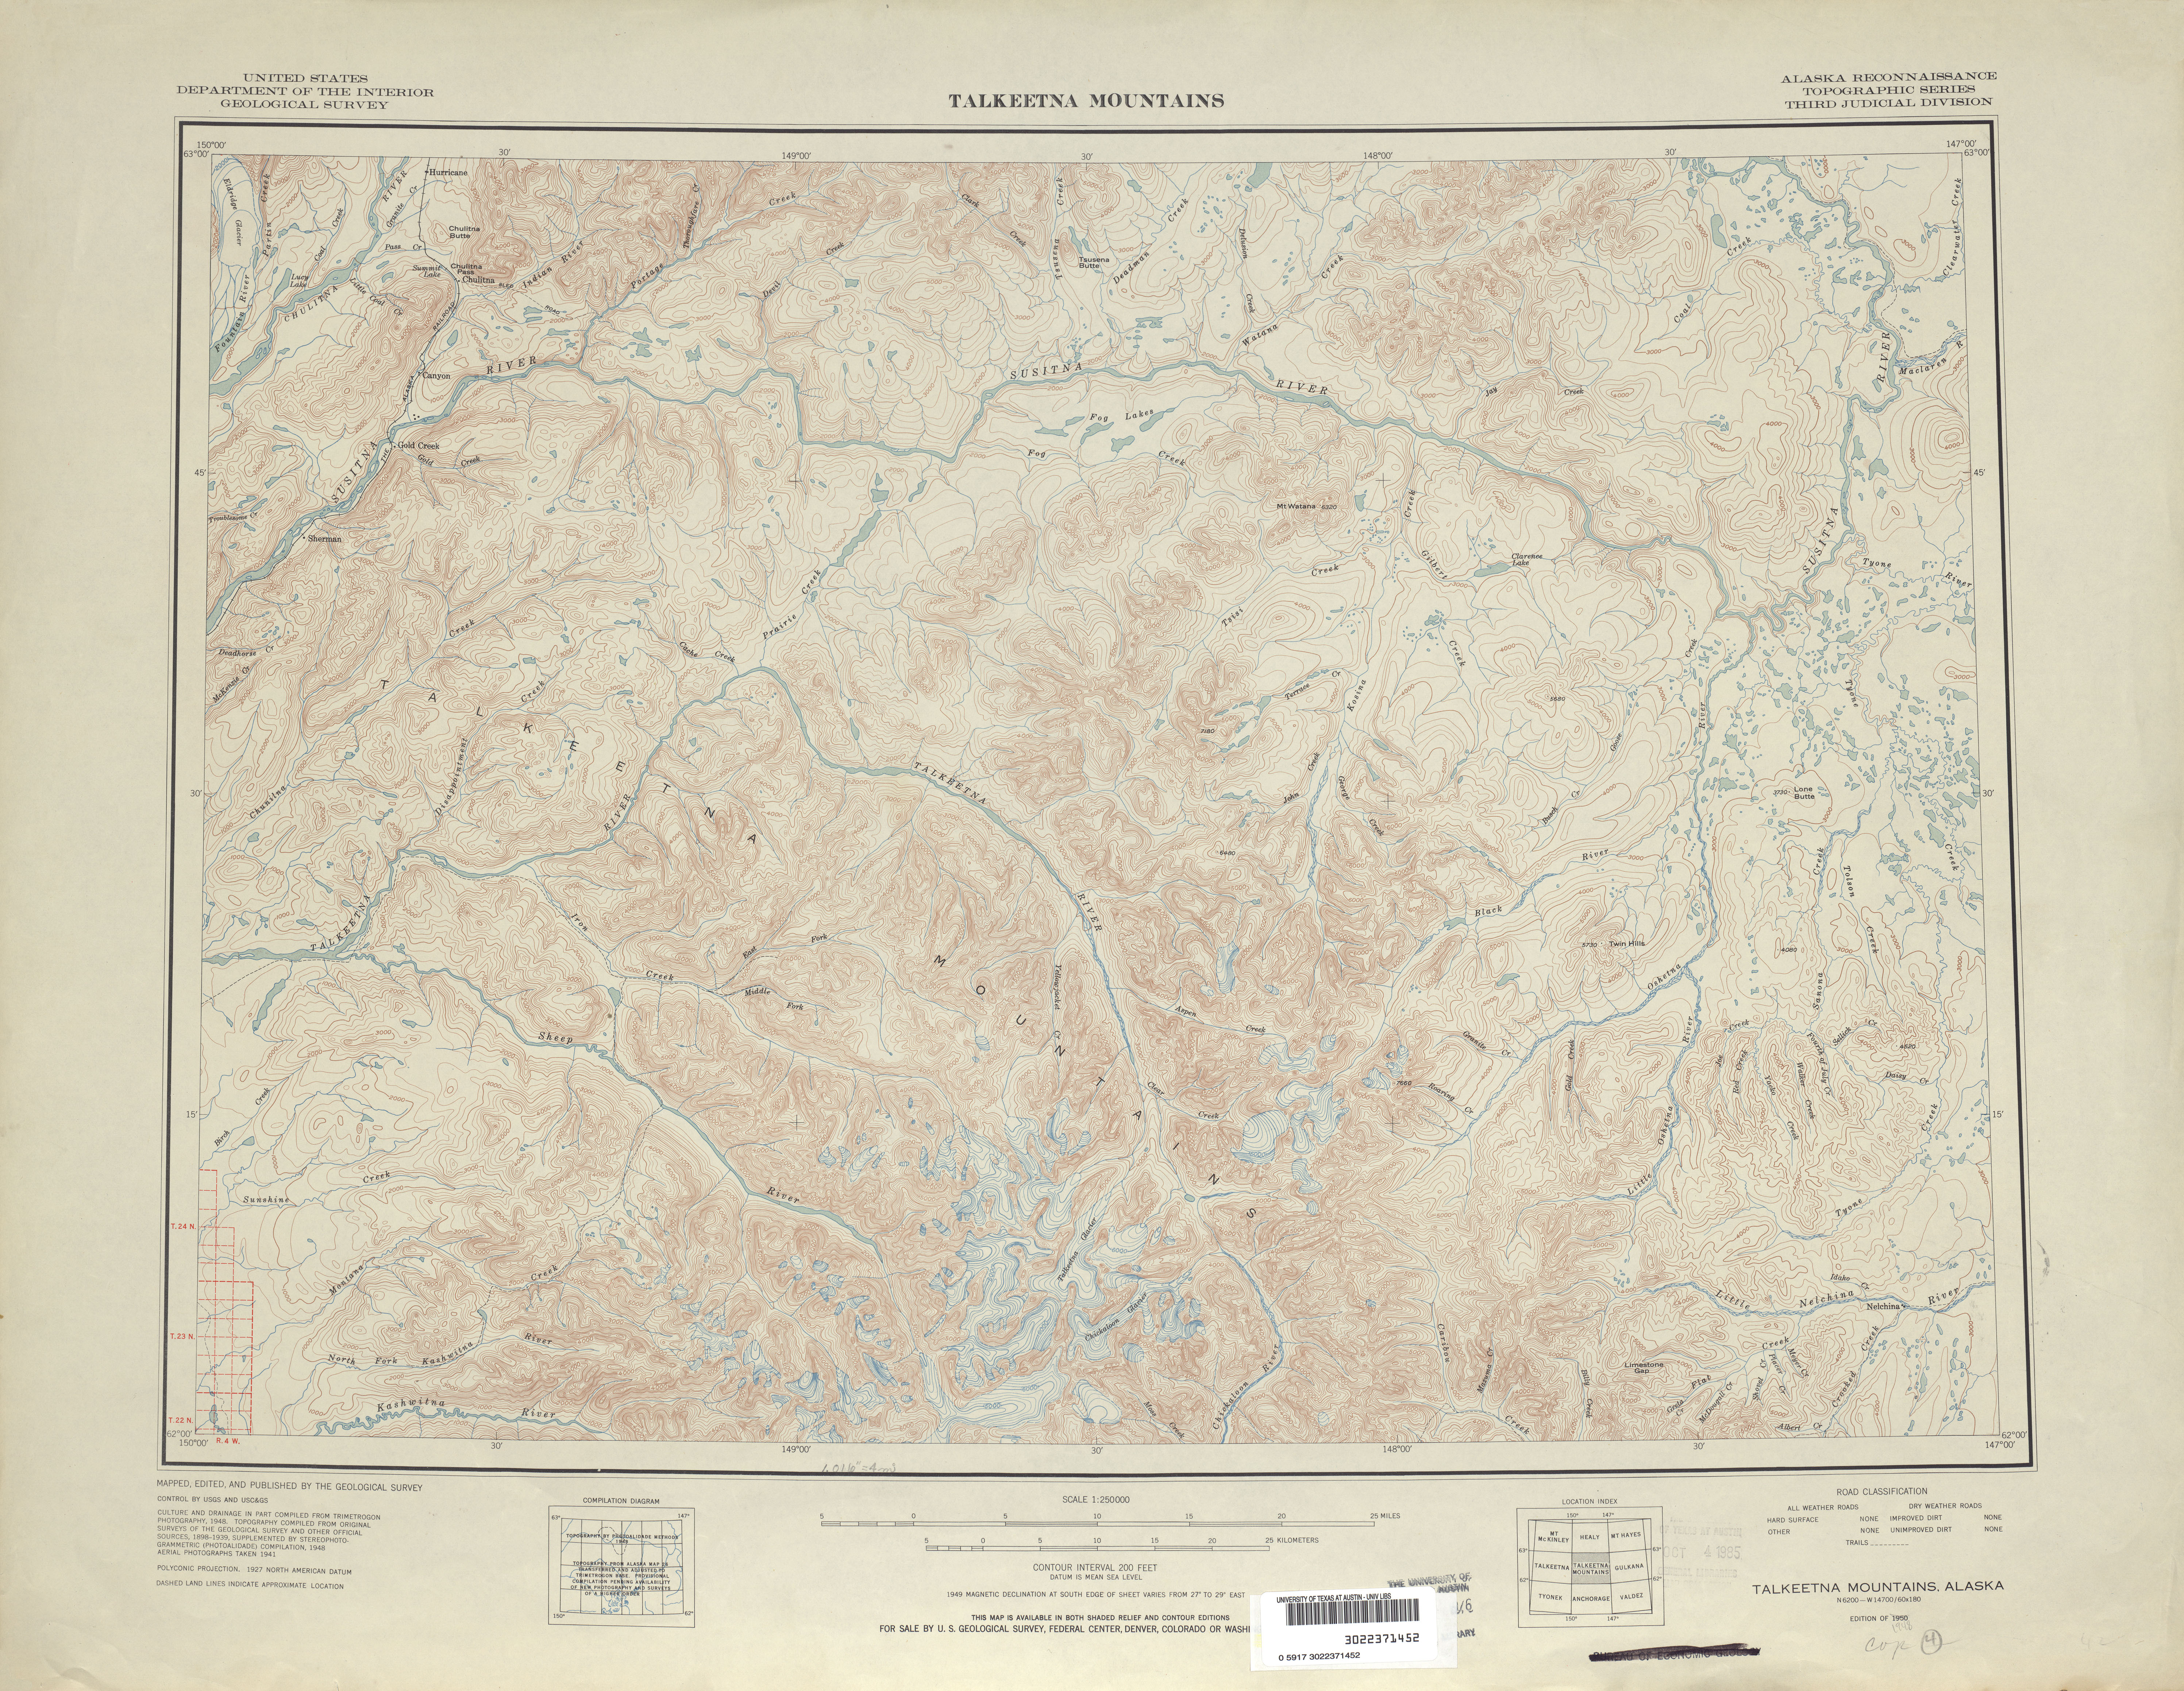 Talkeetna Mountains Topographic Map Sheet, United States 1948